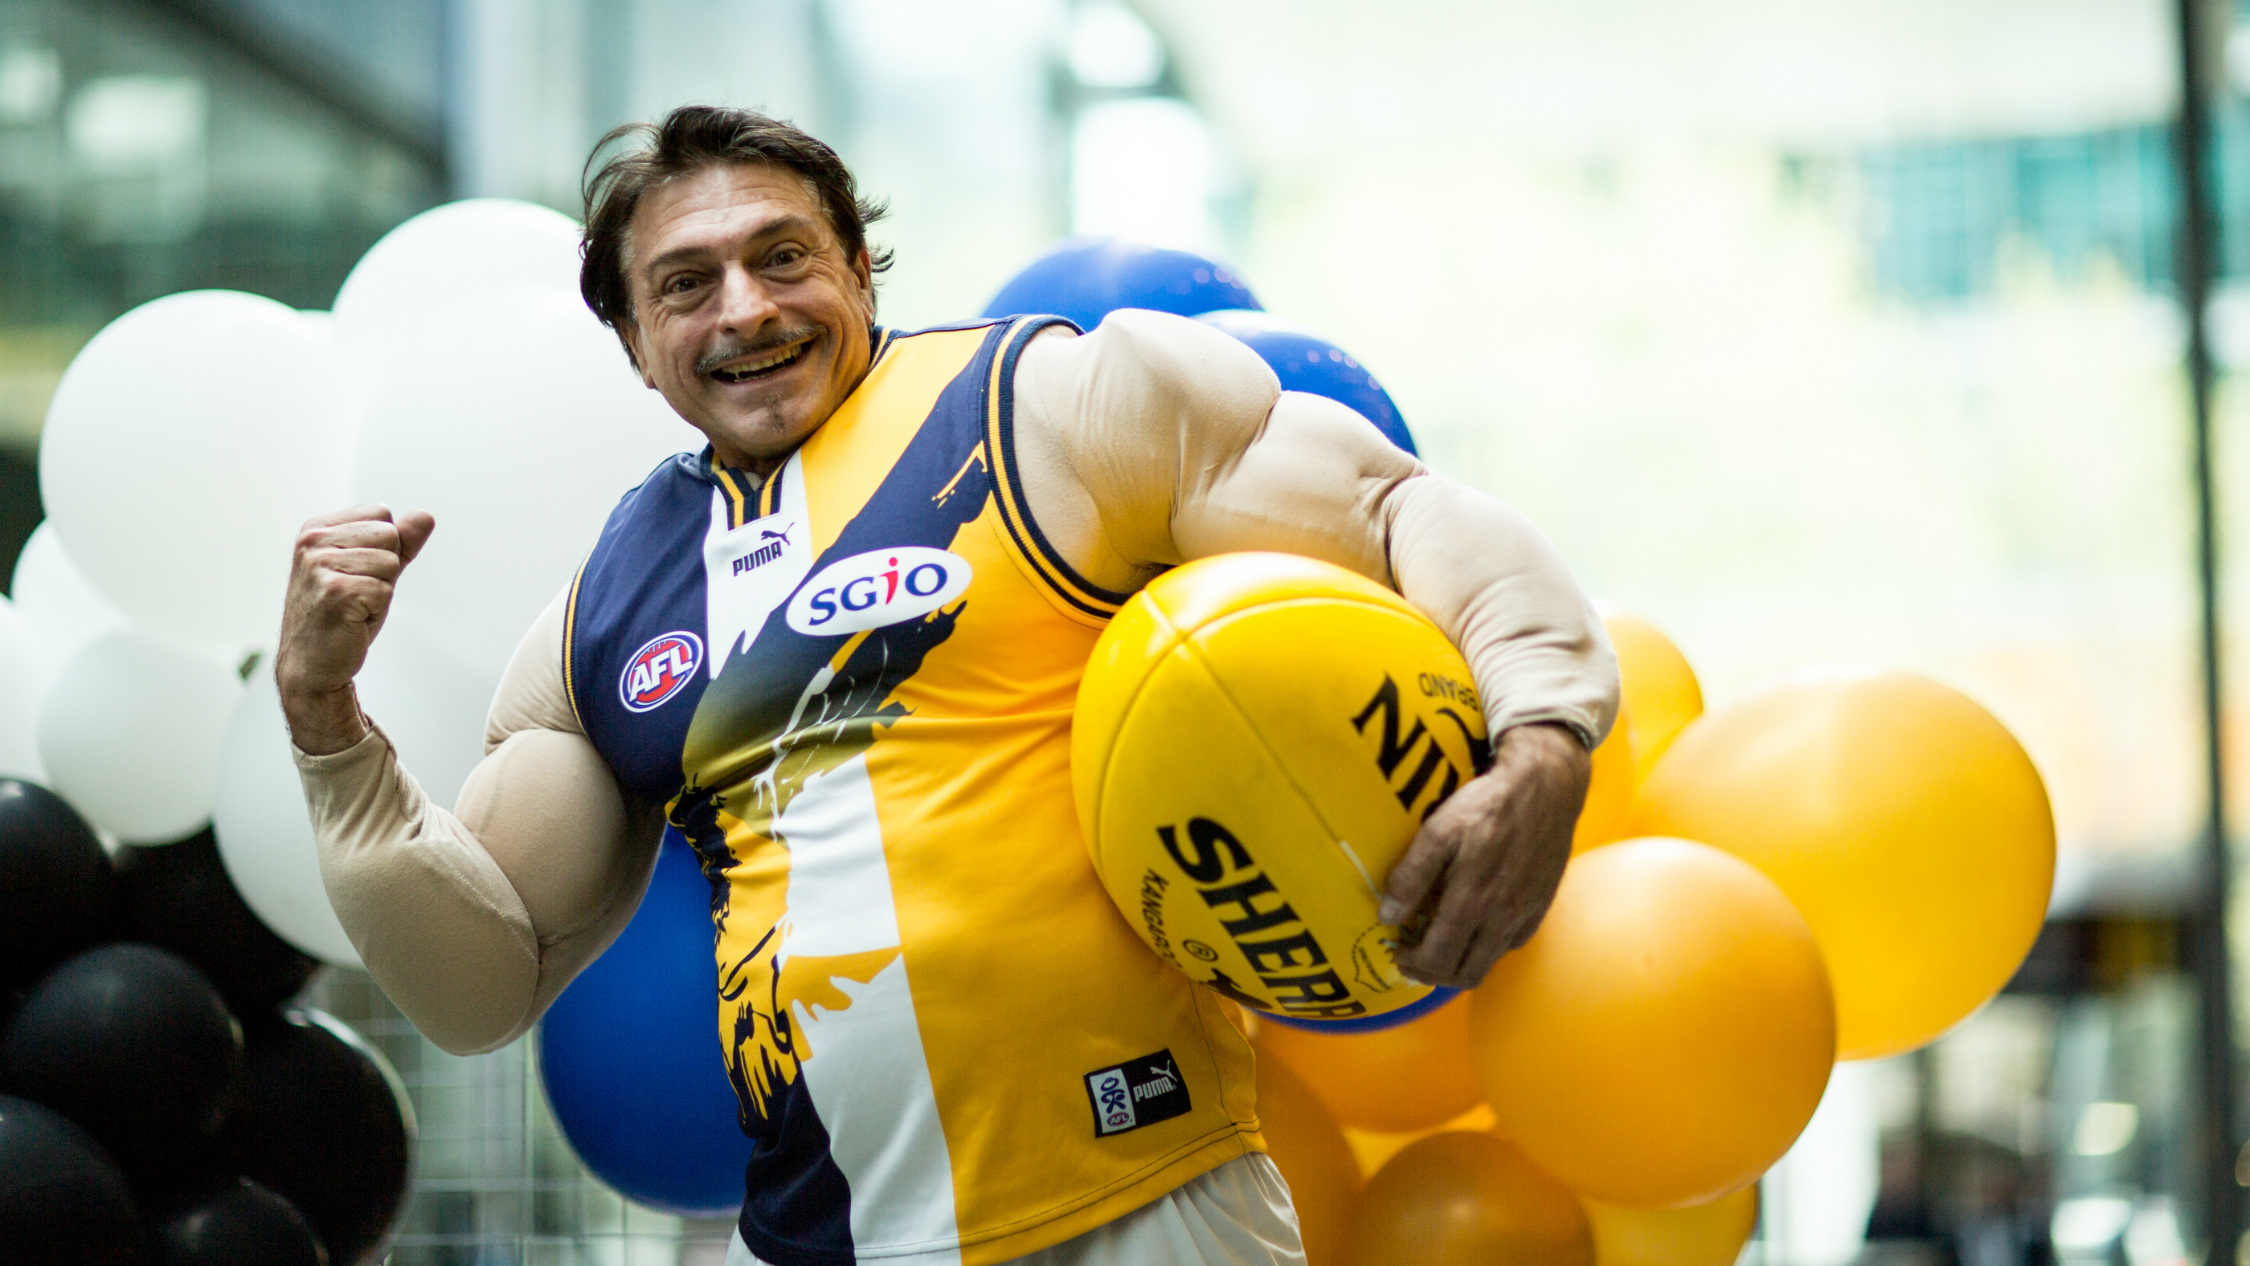 Man wearing a West Coast Eagles footy colours